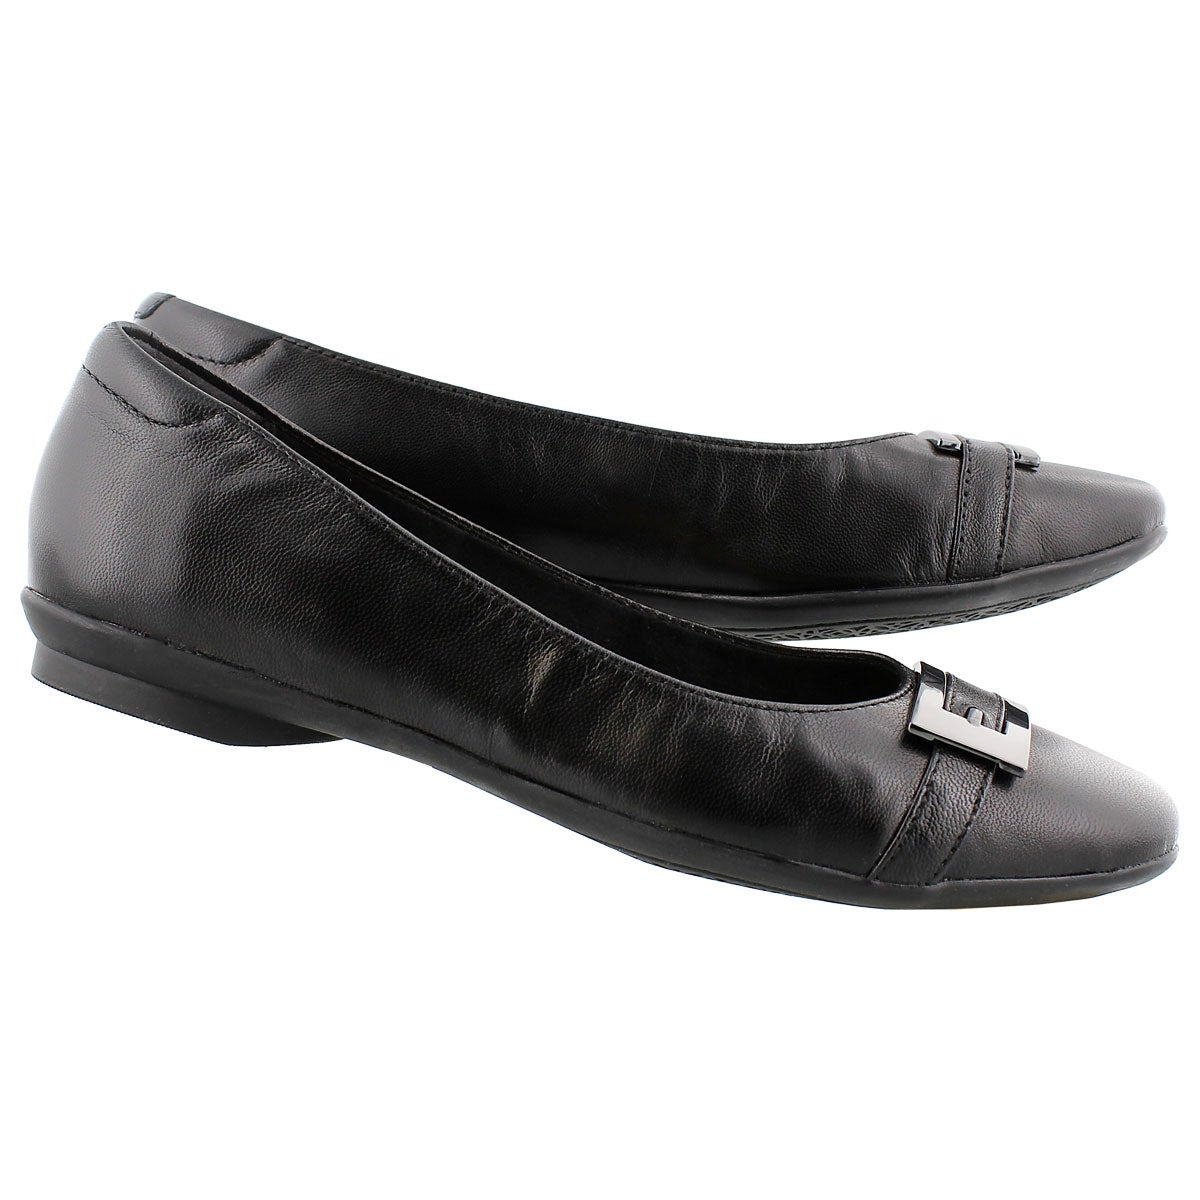 Lds Candra Glare black dress flat - WIDE